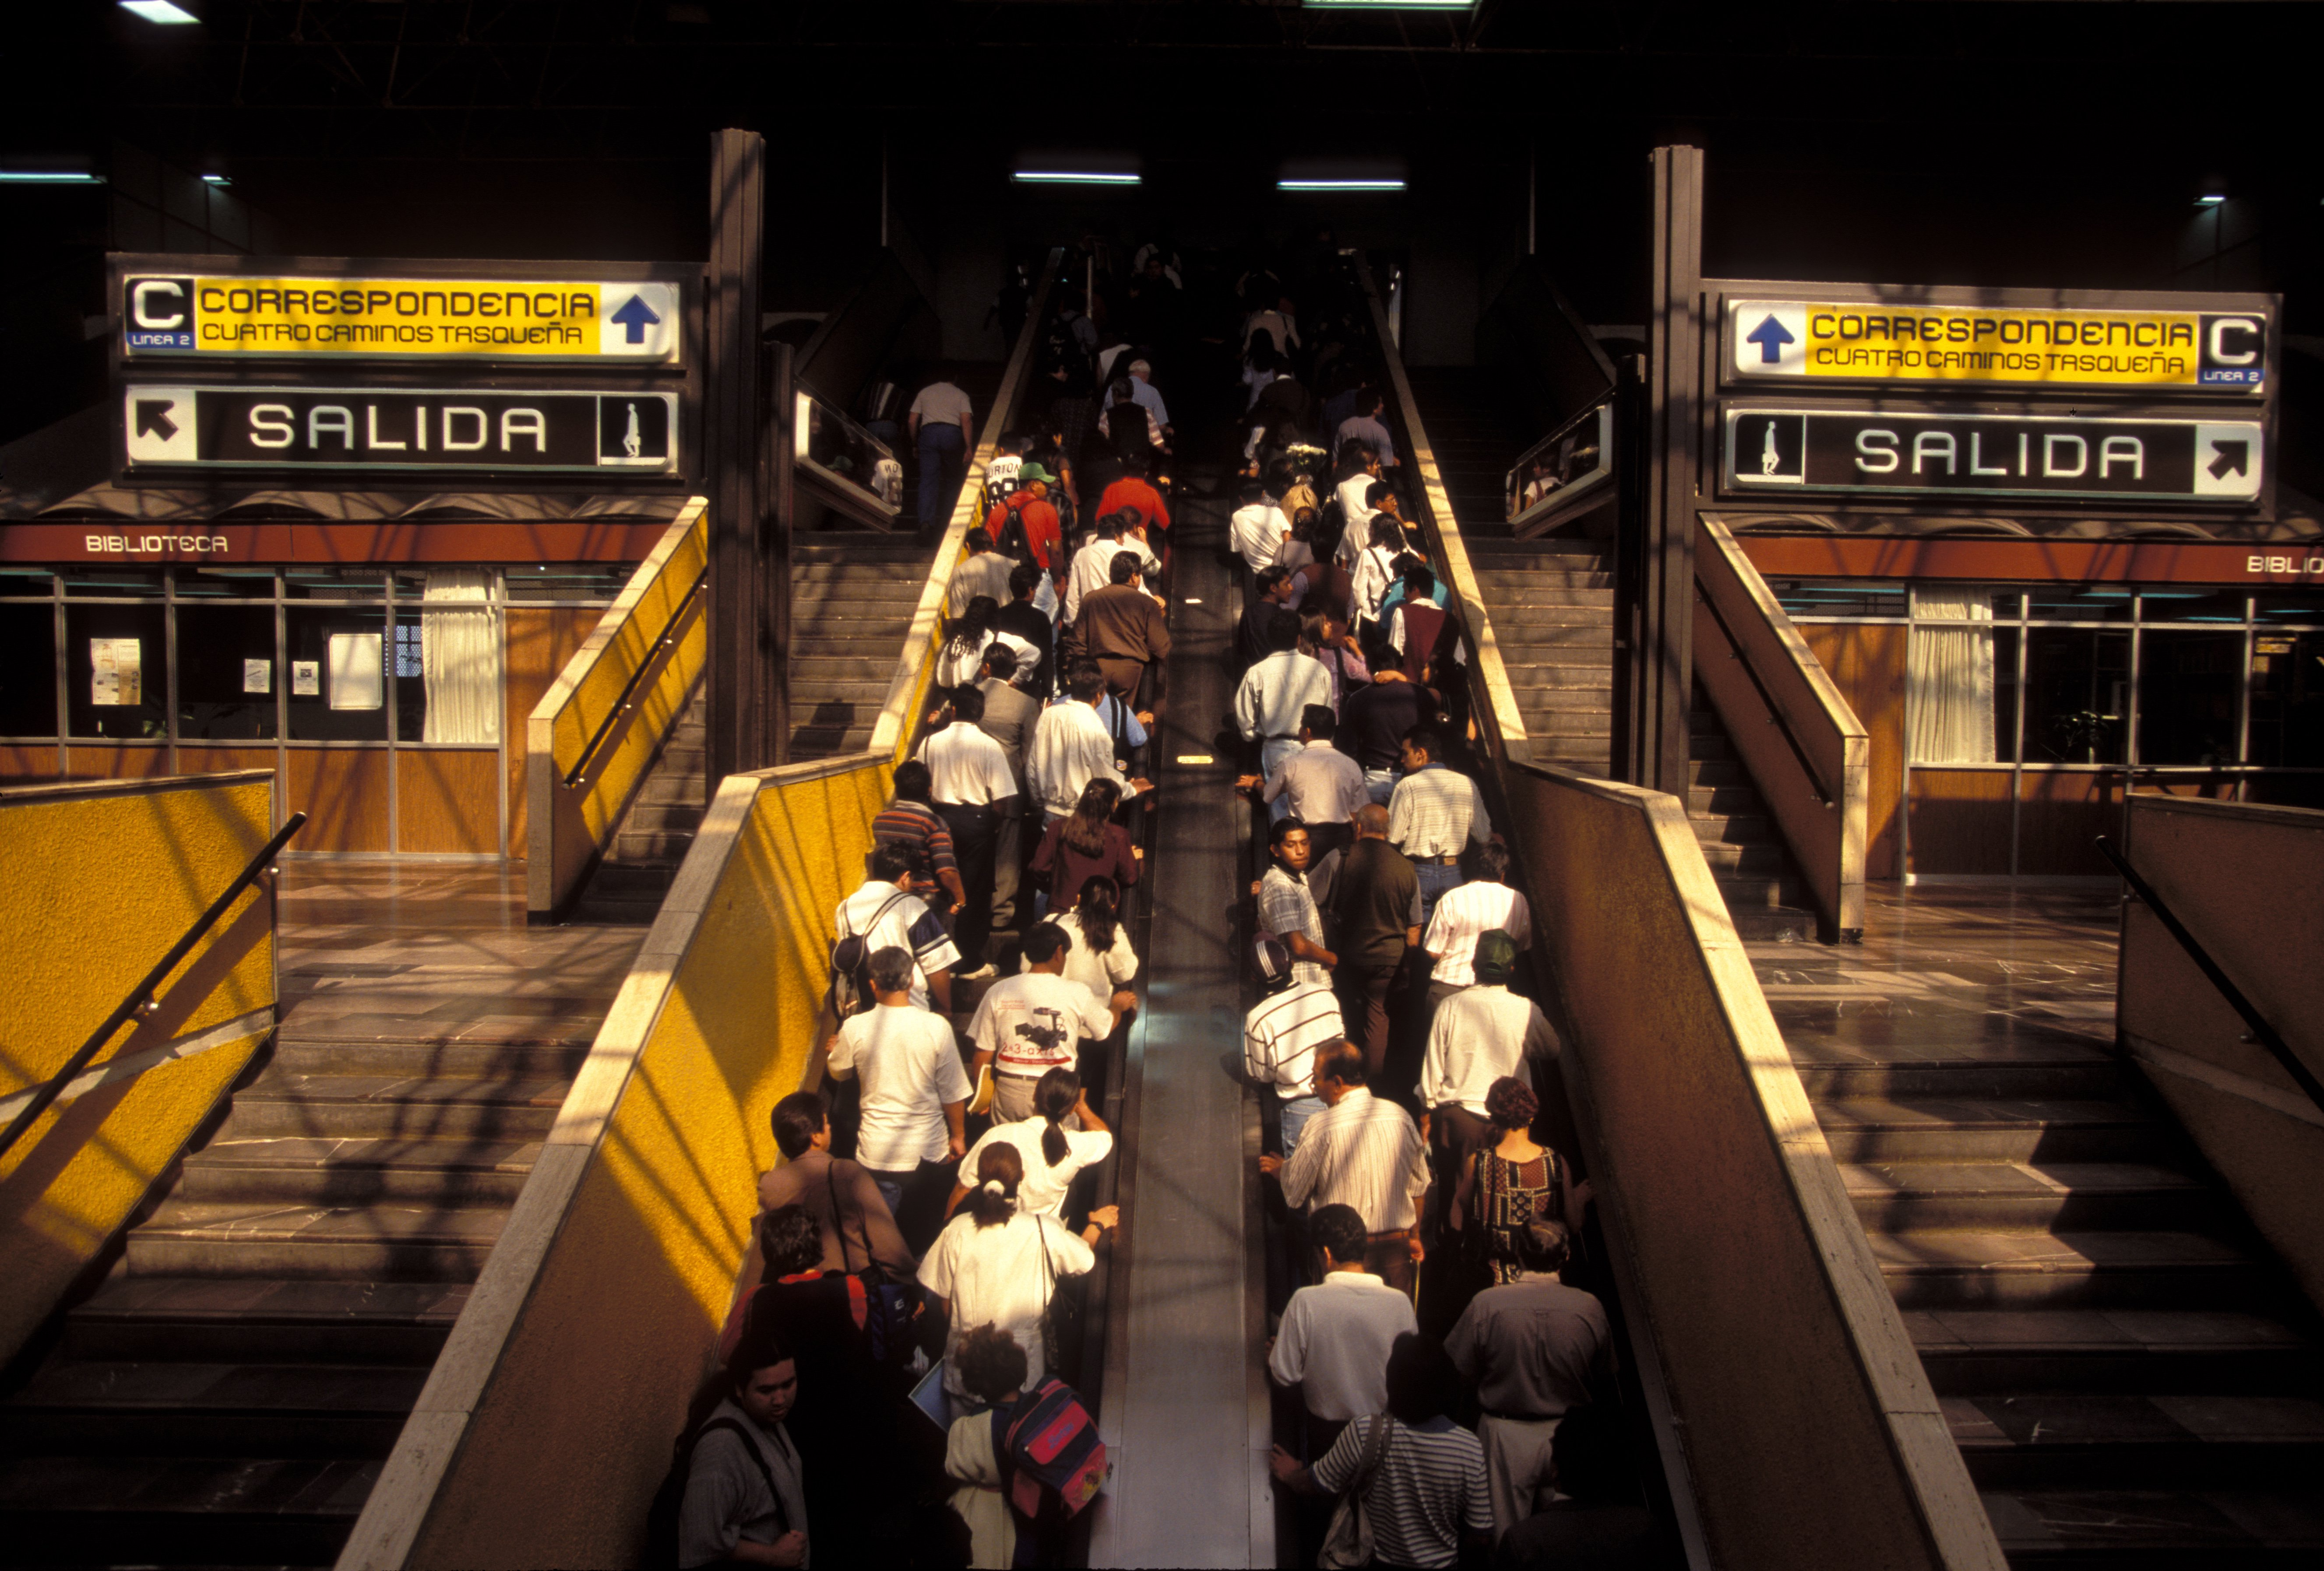 Passengers exit a metro station in Mexico City